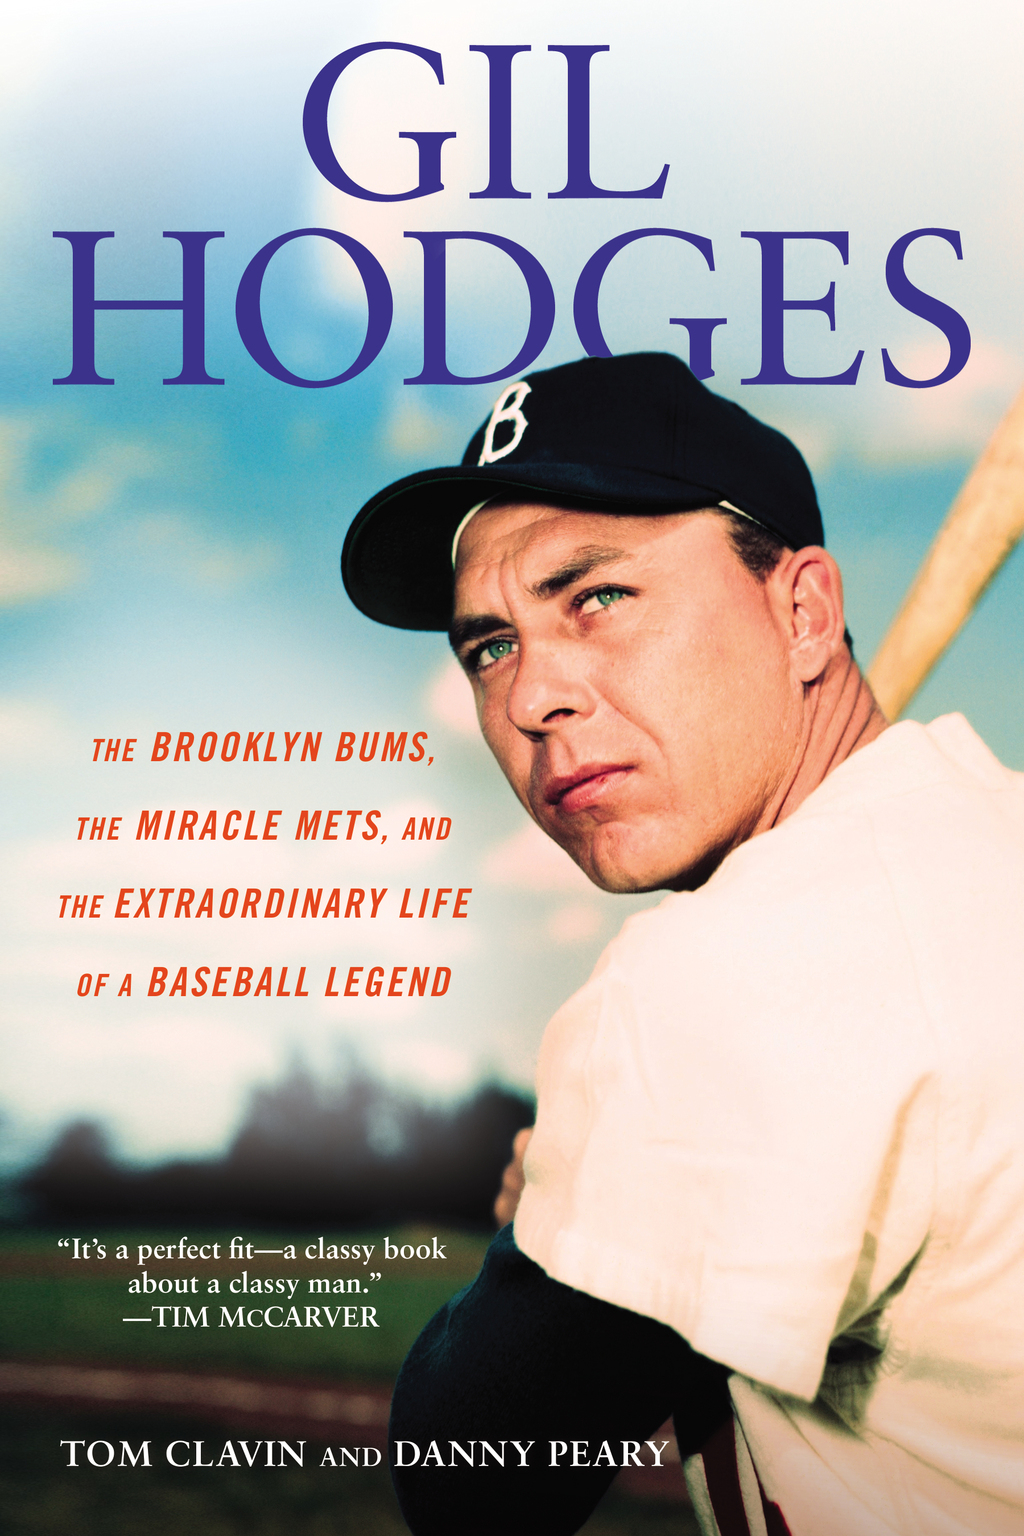 Gil Hodges The Brooklyn Bums,  the Miracle Mets,  and the Extraordinary Life of a Baseball Legend